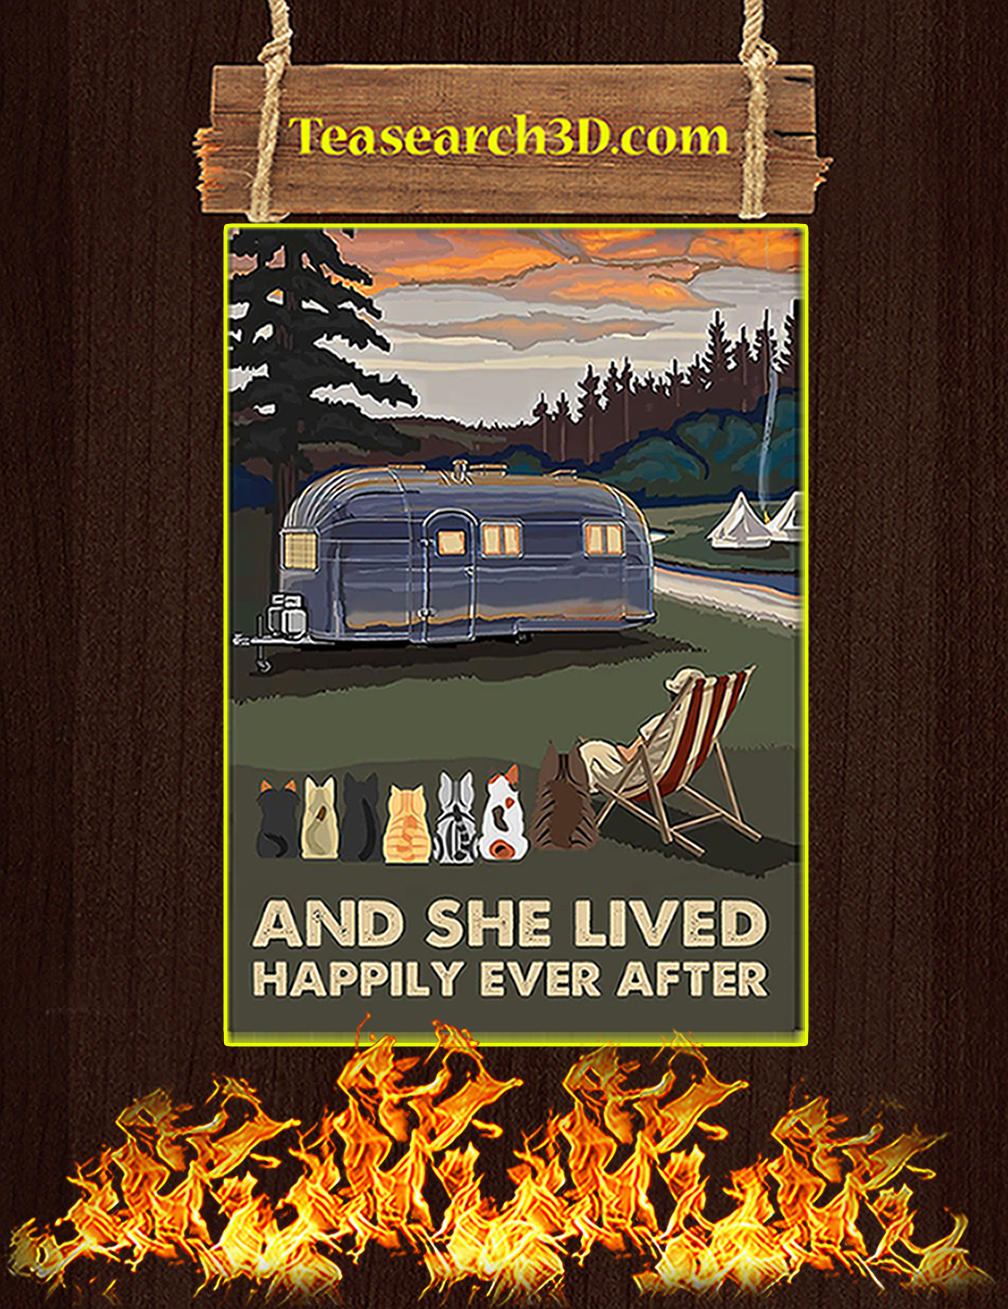 Camping cats and she lived happily ever after poster